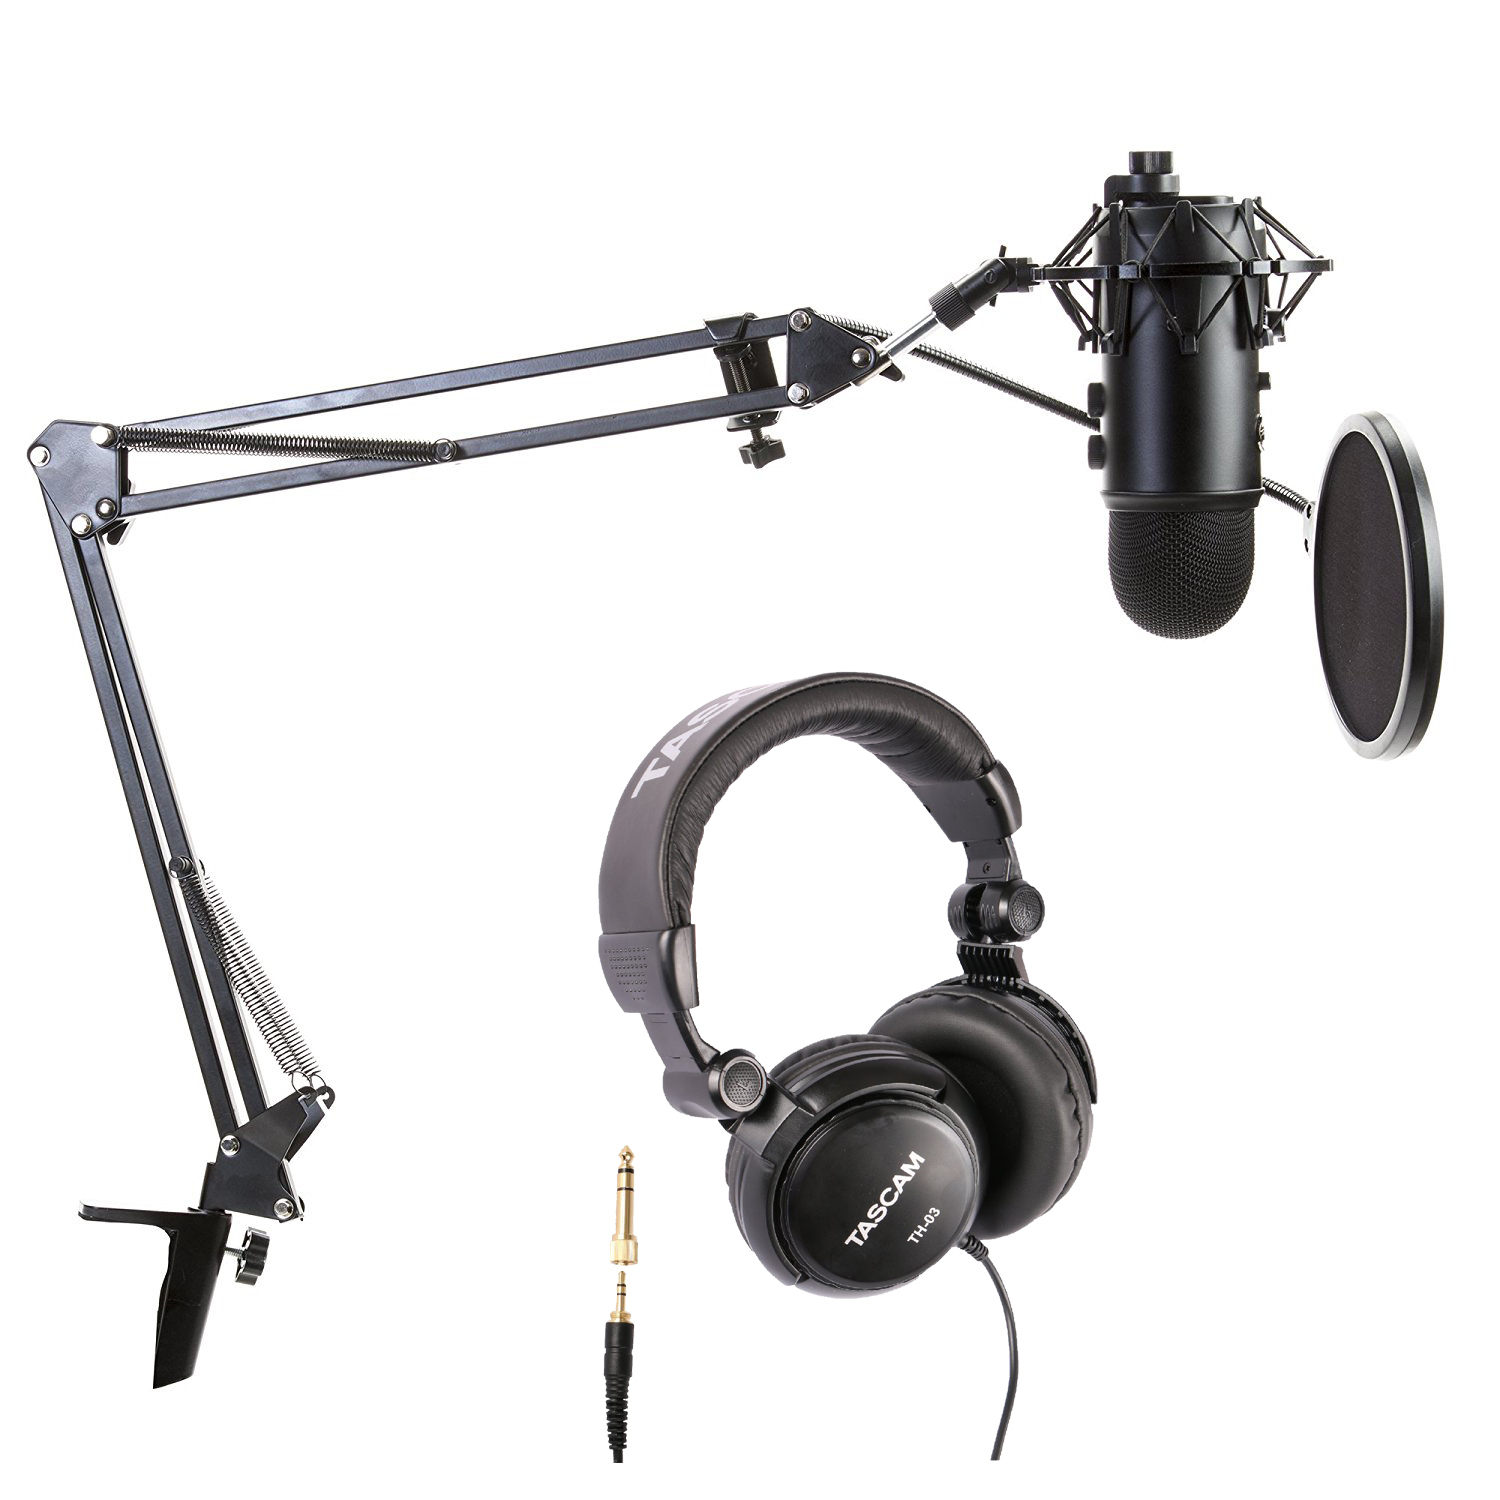 Blue Microphone Blackout Yeti with Boom arm, Pop Filter, Mount and Headphones